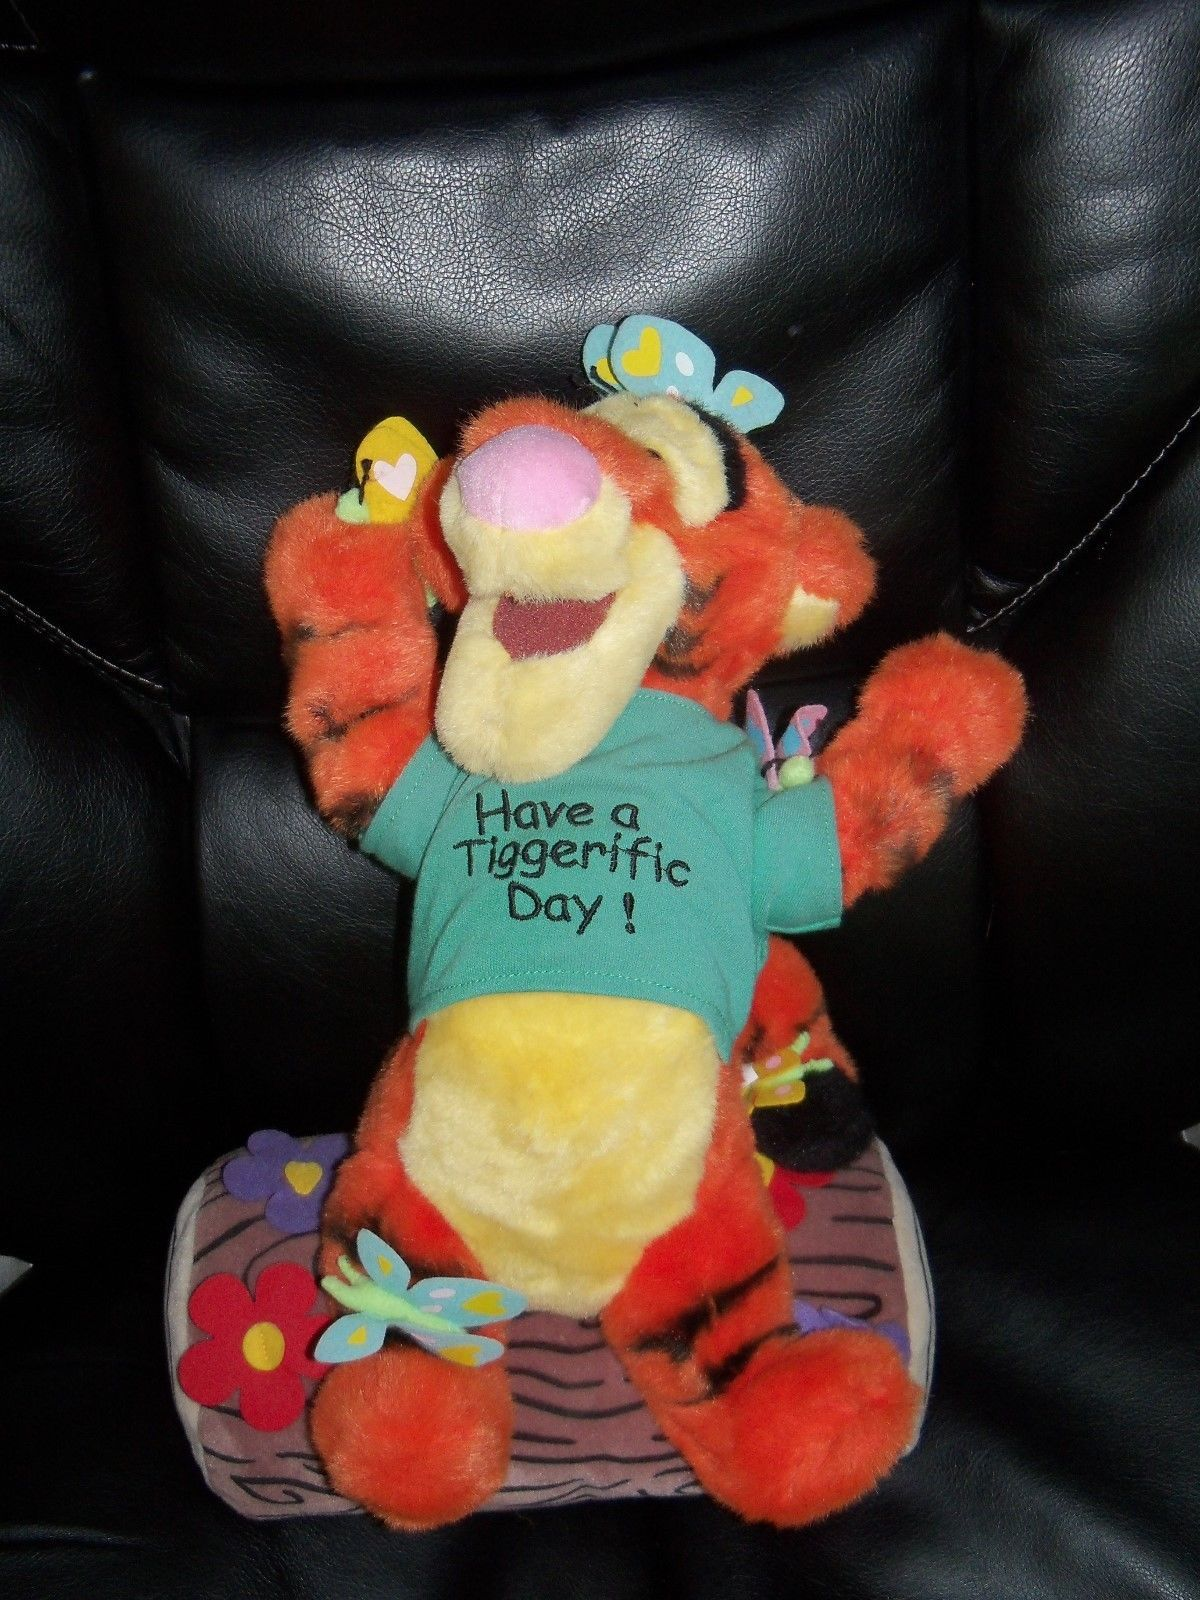 Primary image for DISNEY TIGGER ON LOG HAVE A TIGGERIFIC DAY PLUSH BUTTERFLIES FLOWERS 16 IN NWOT